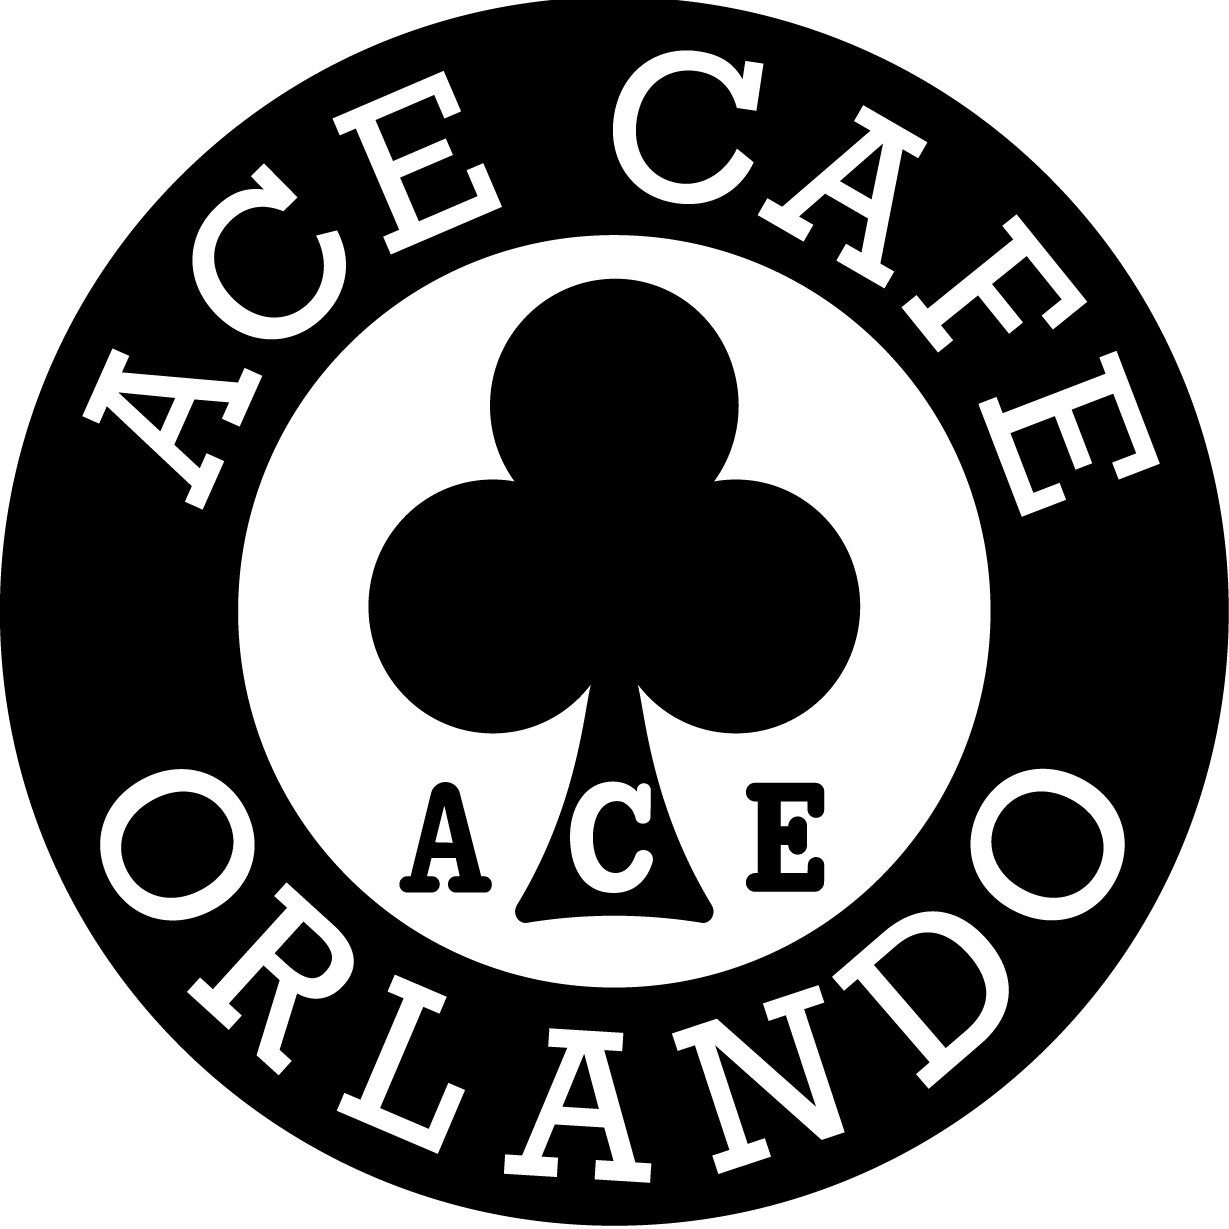 Restaurants near Ace Cafe Orlando